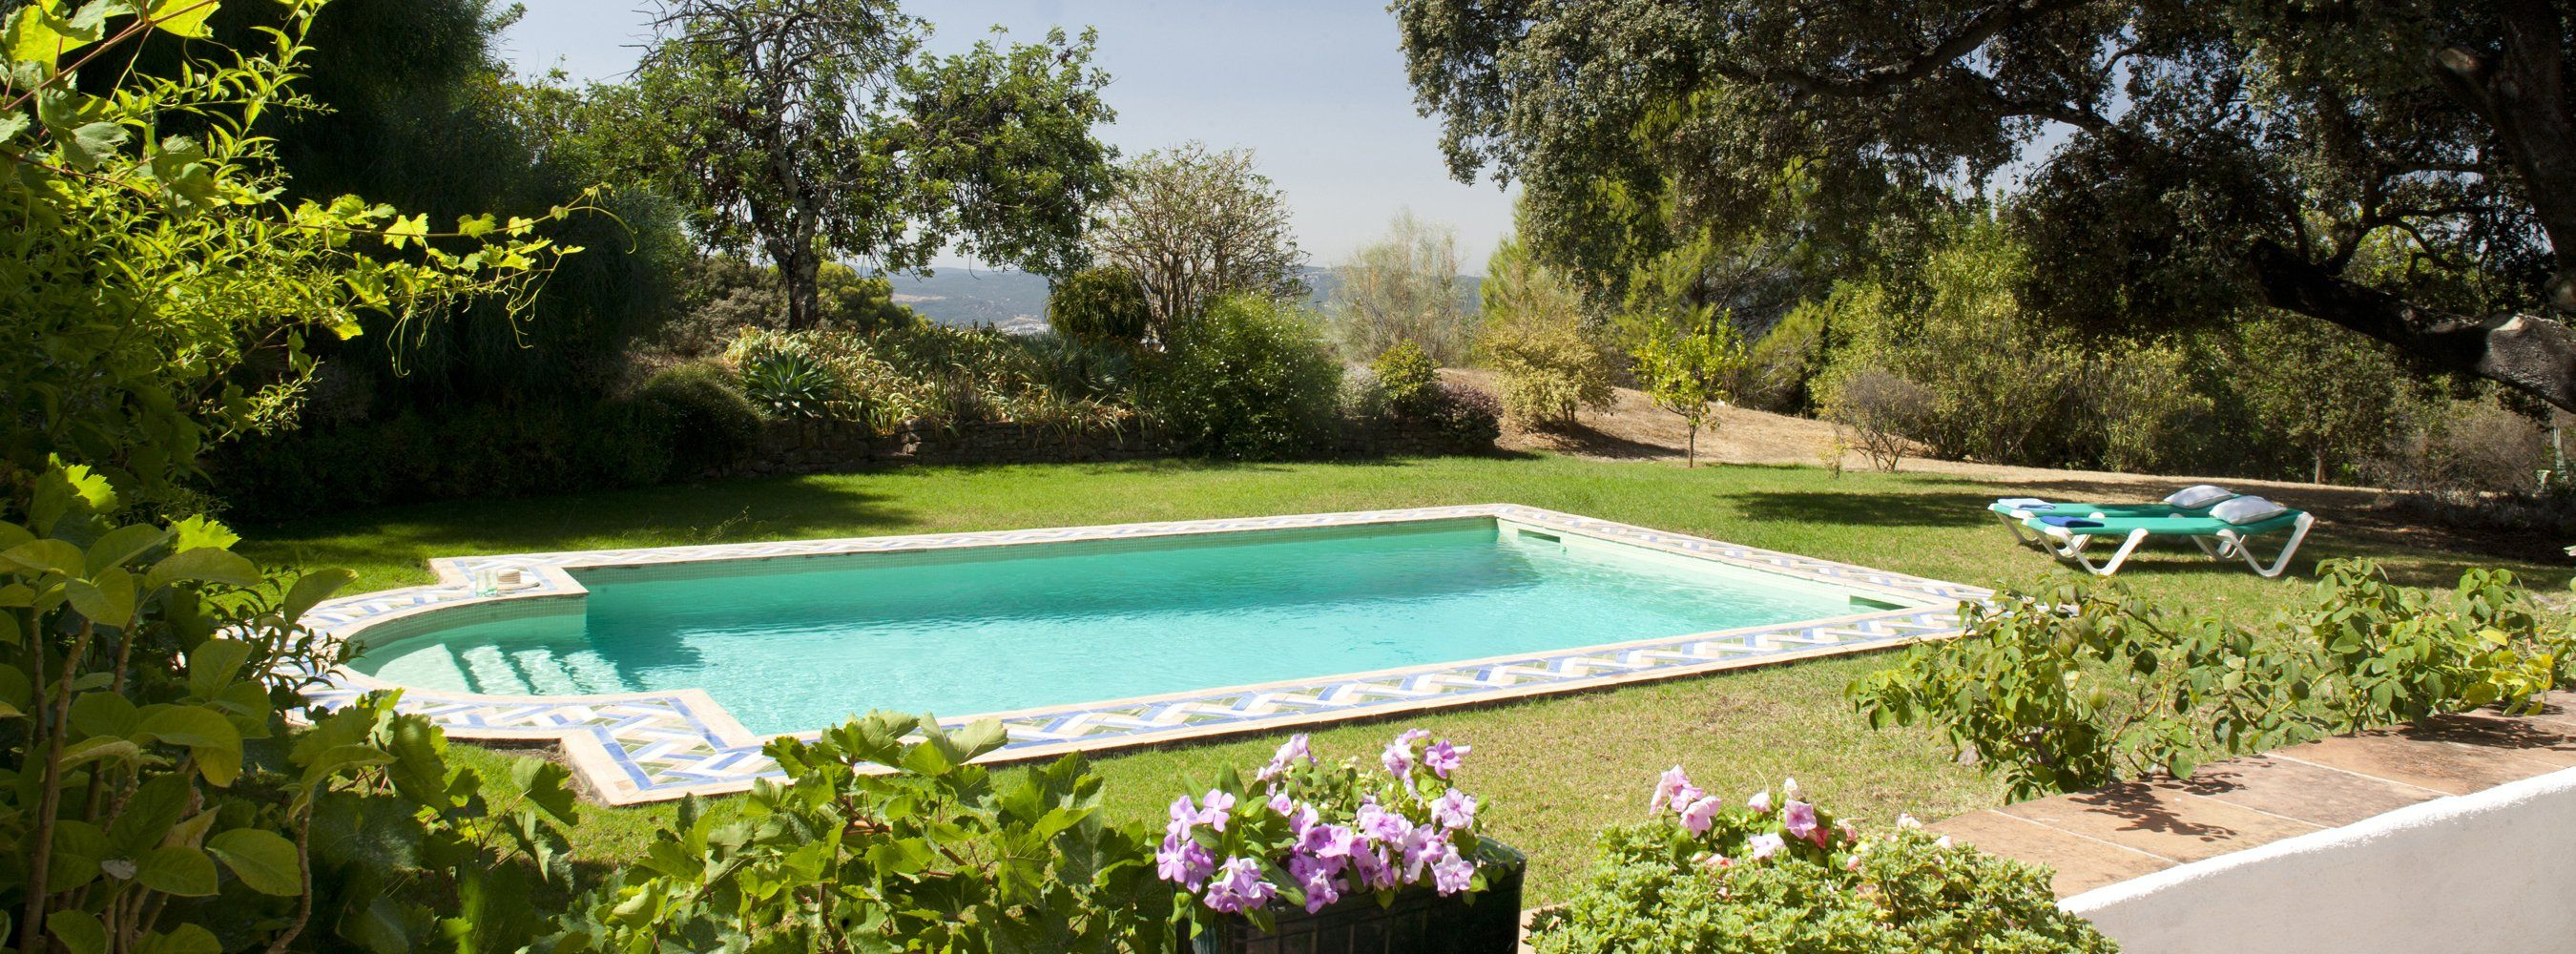 swimming pool with lawn